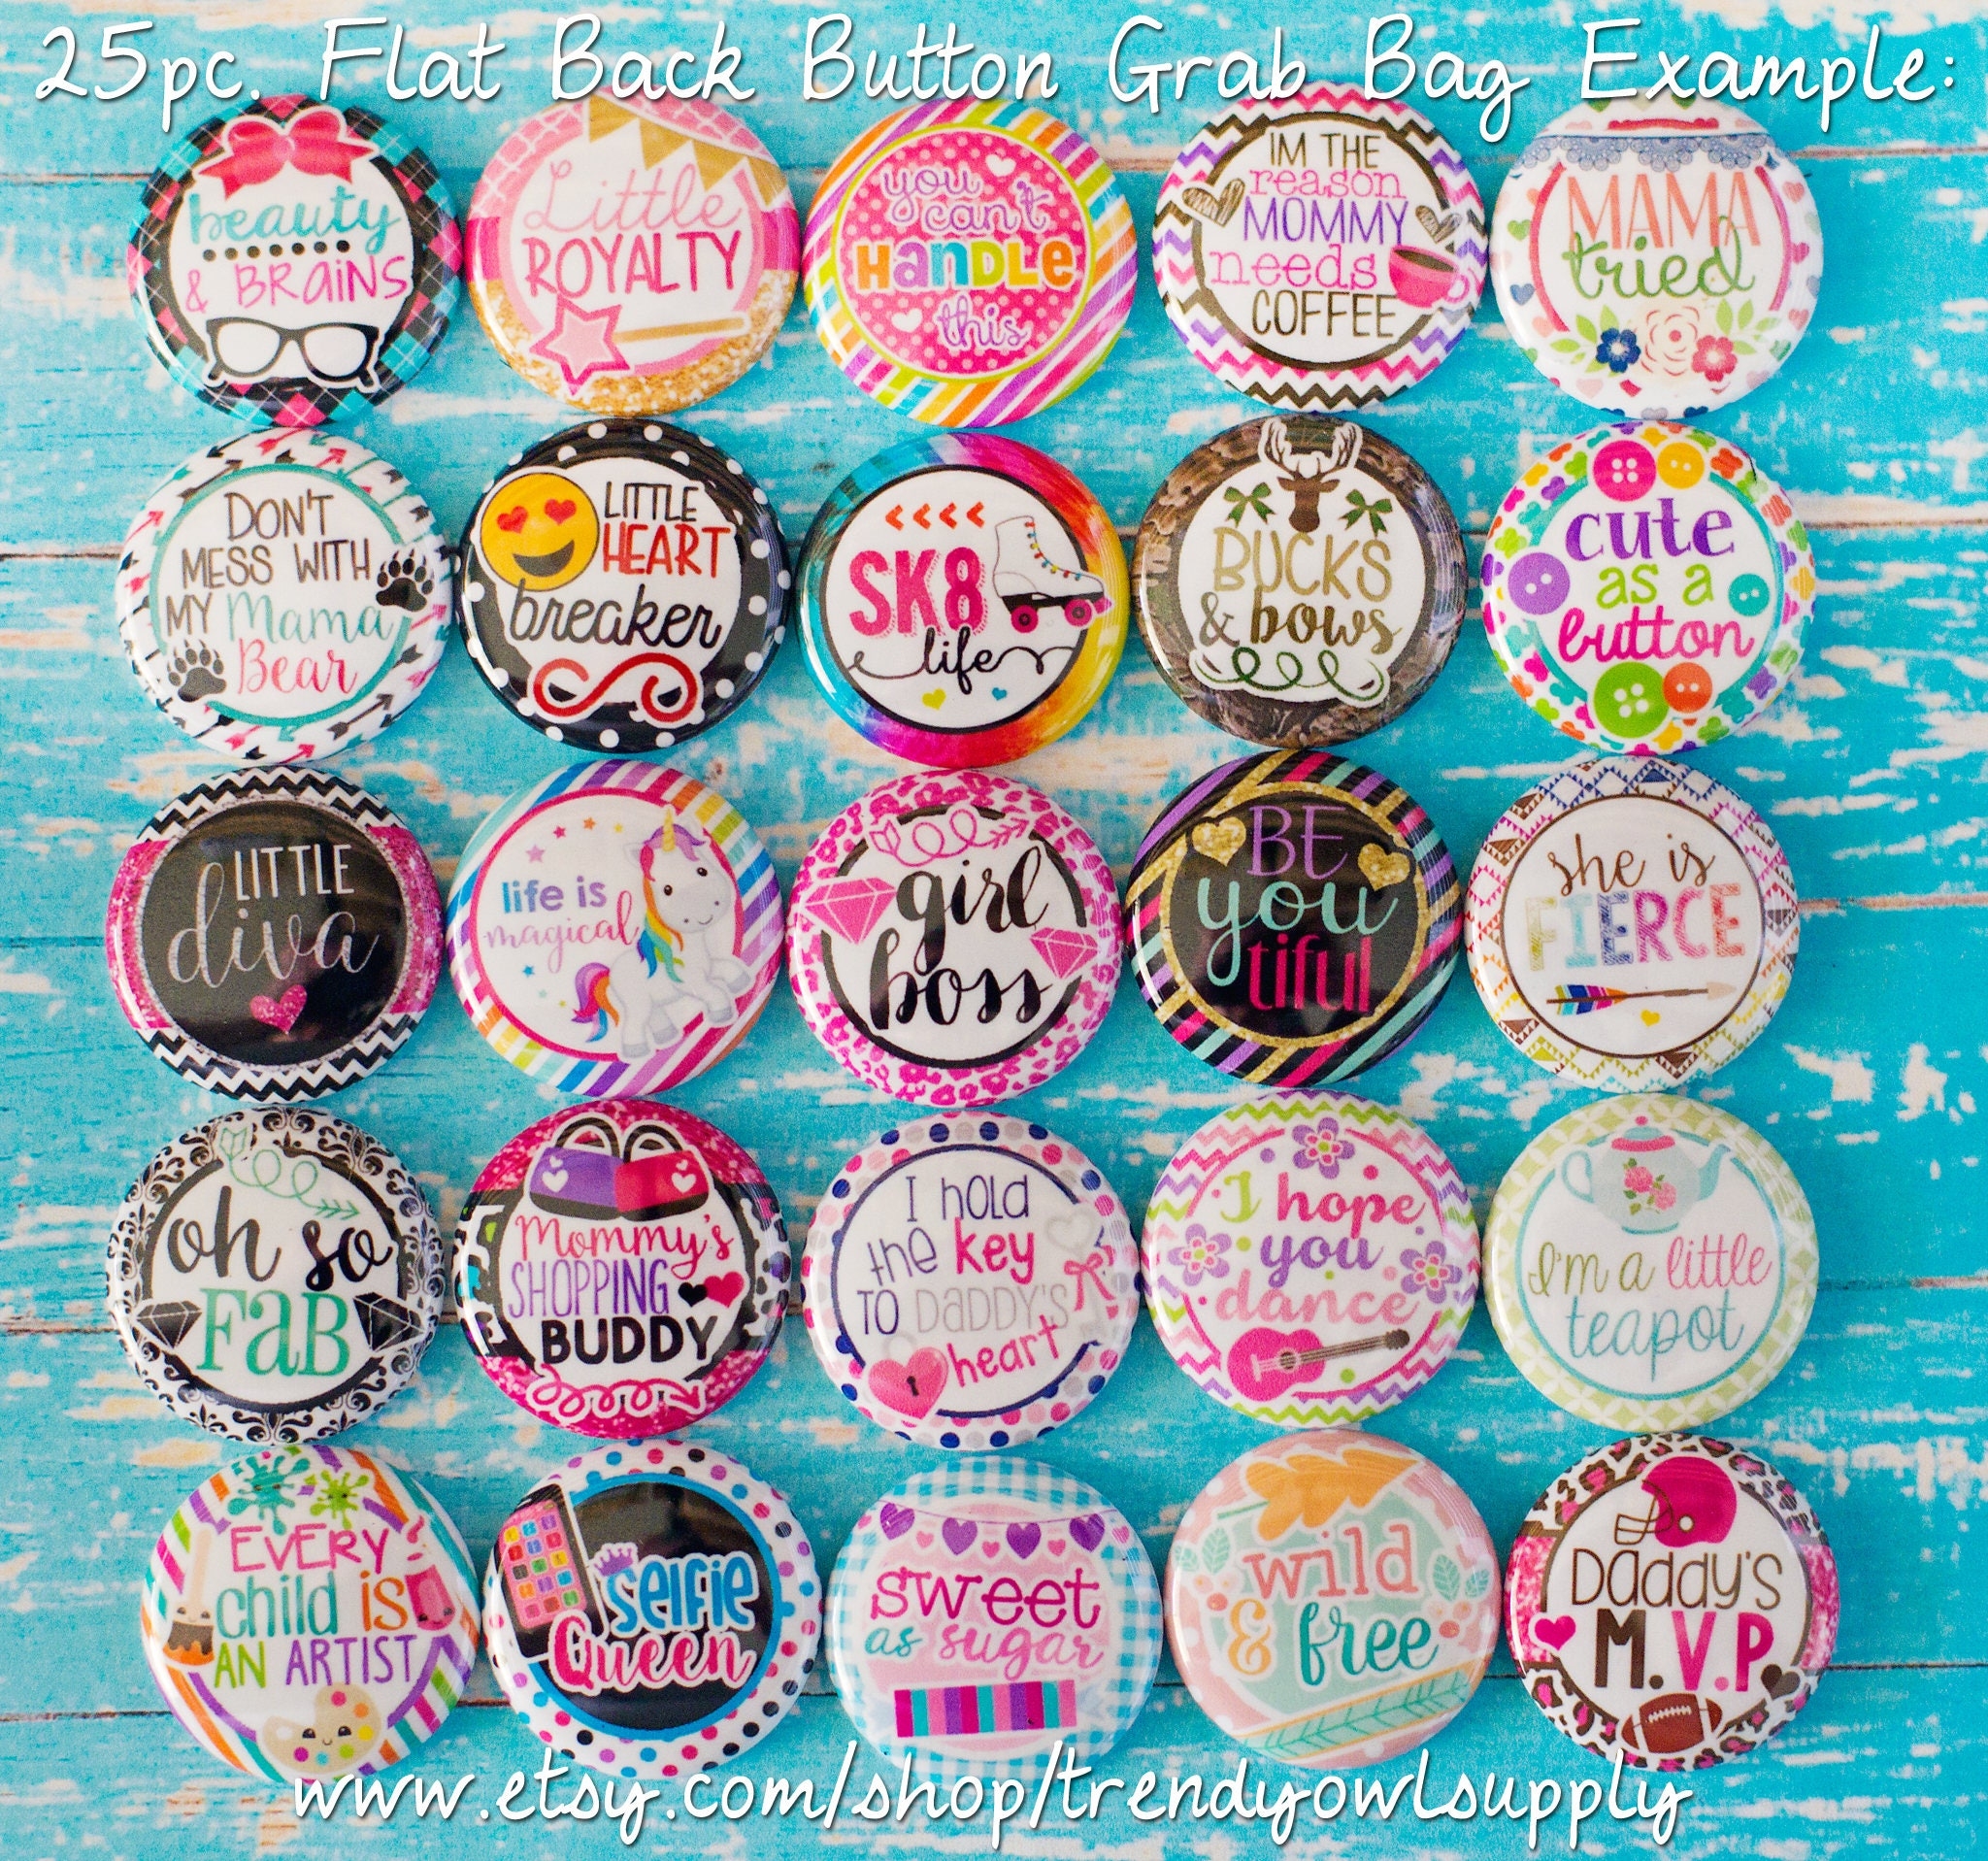 25pc Flat Back Button Grab Bag Misc Sayings From